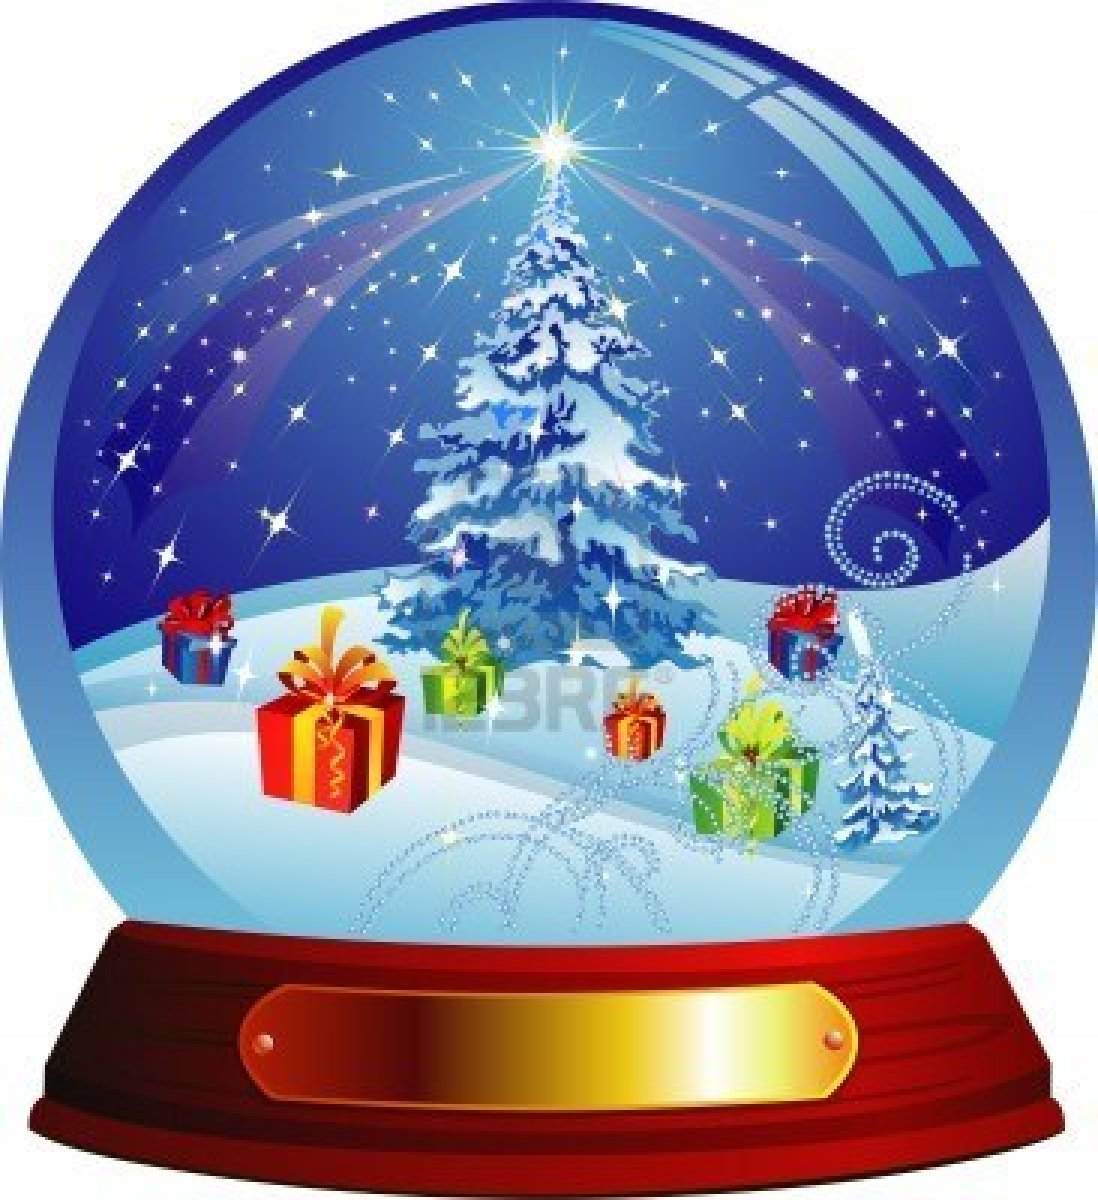 IA] Add a Giant Christmas Smurfy Wonder such as a Snow Globe or ...